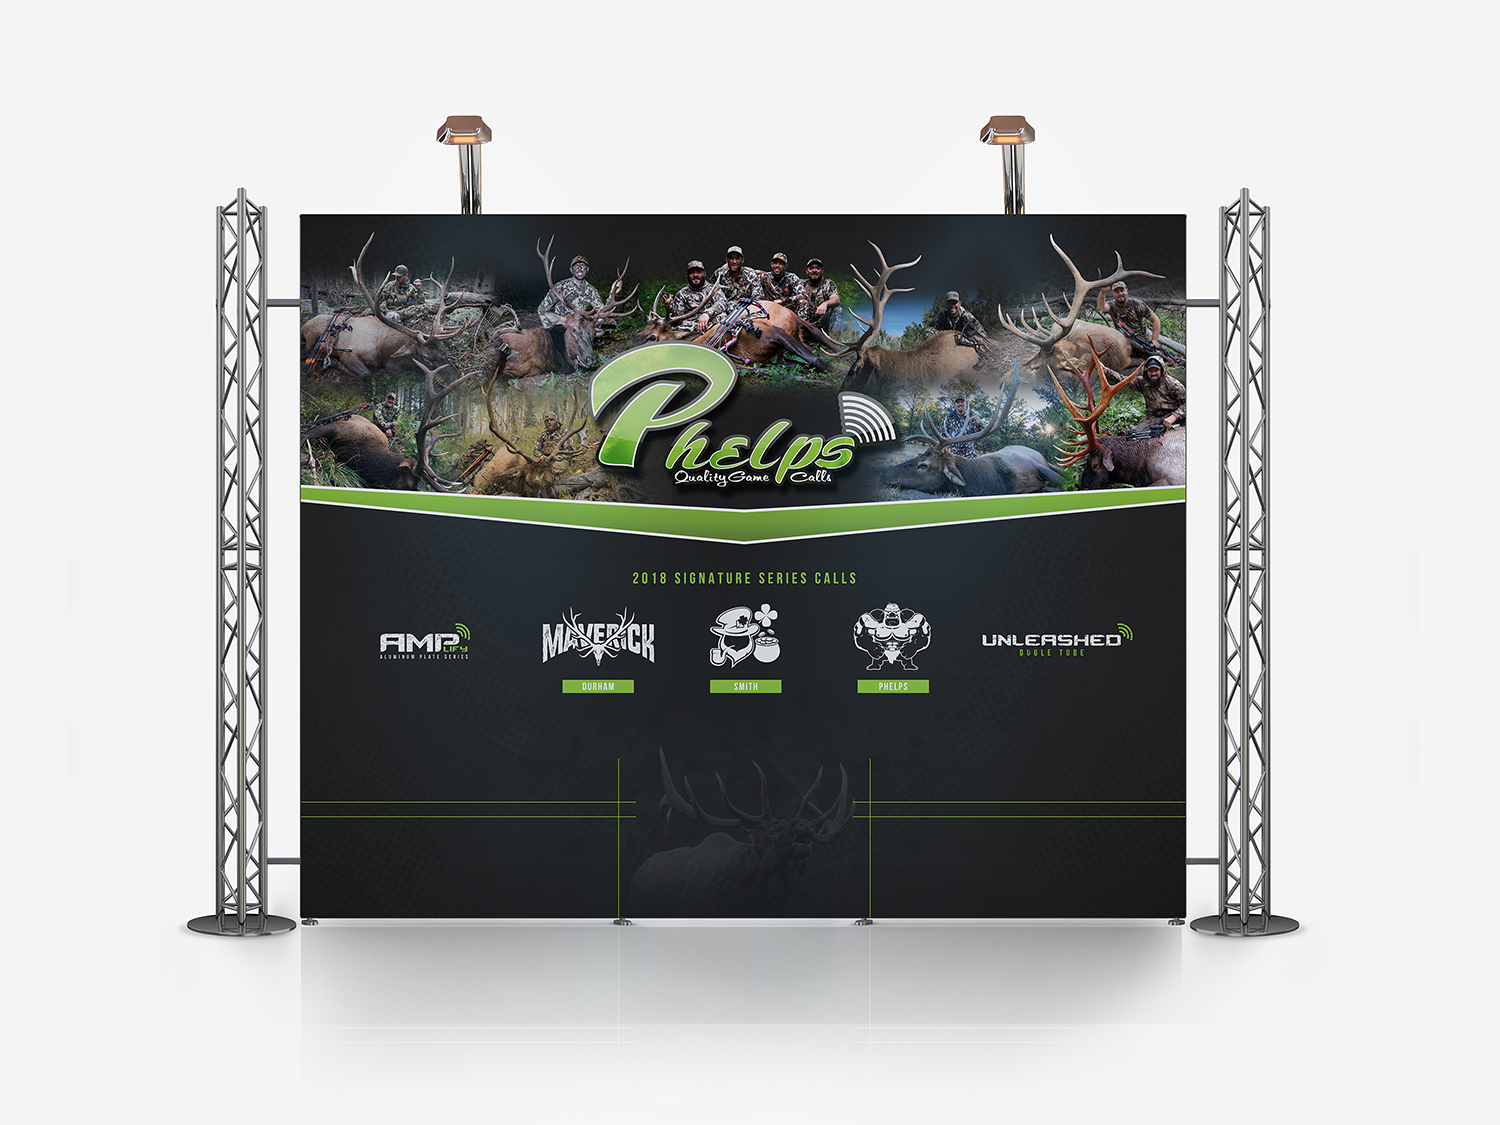 Phelps Game Calls Hunting Tradeshow Booth Design